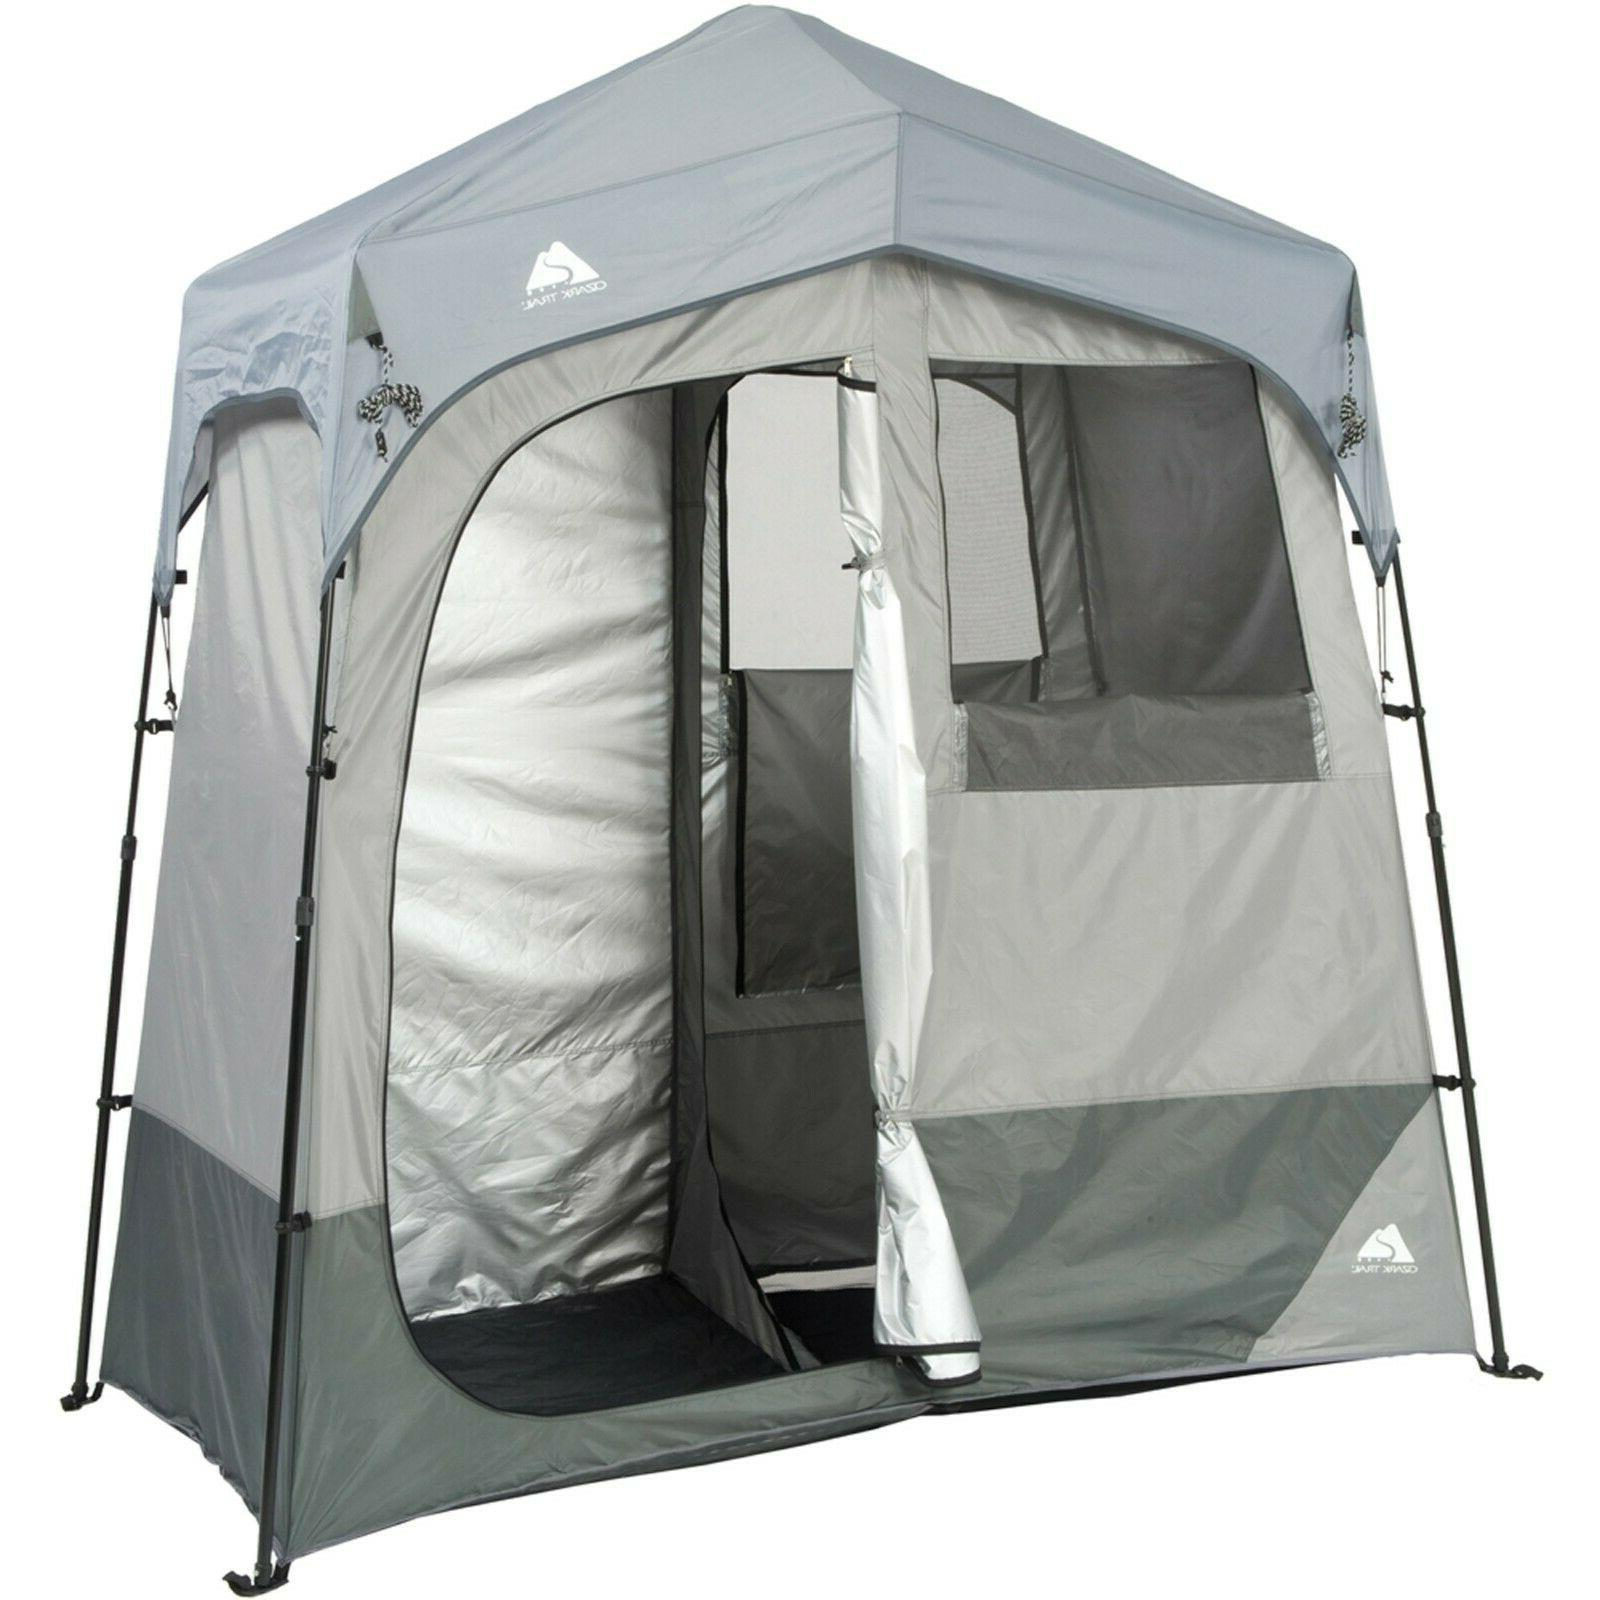 2 room camping instant shower utility shelter